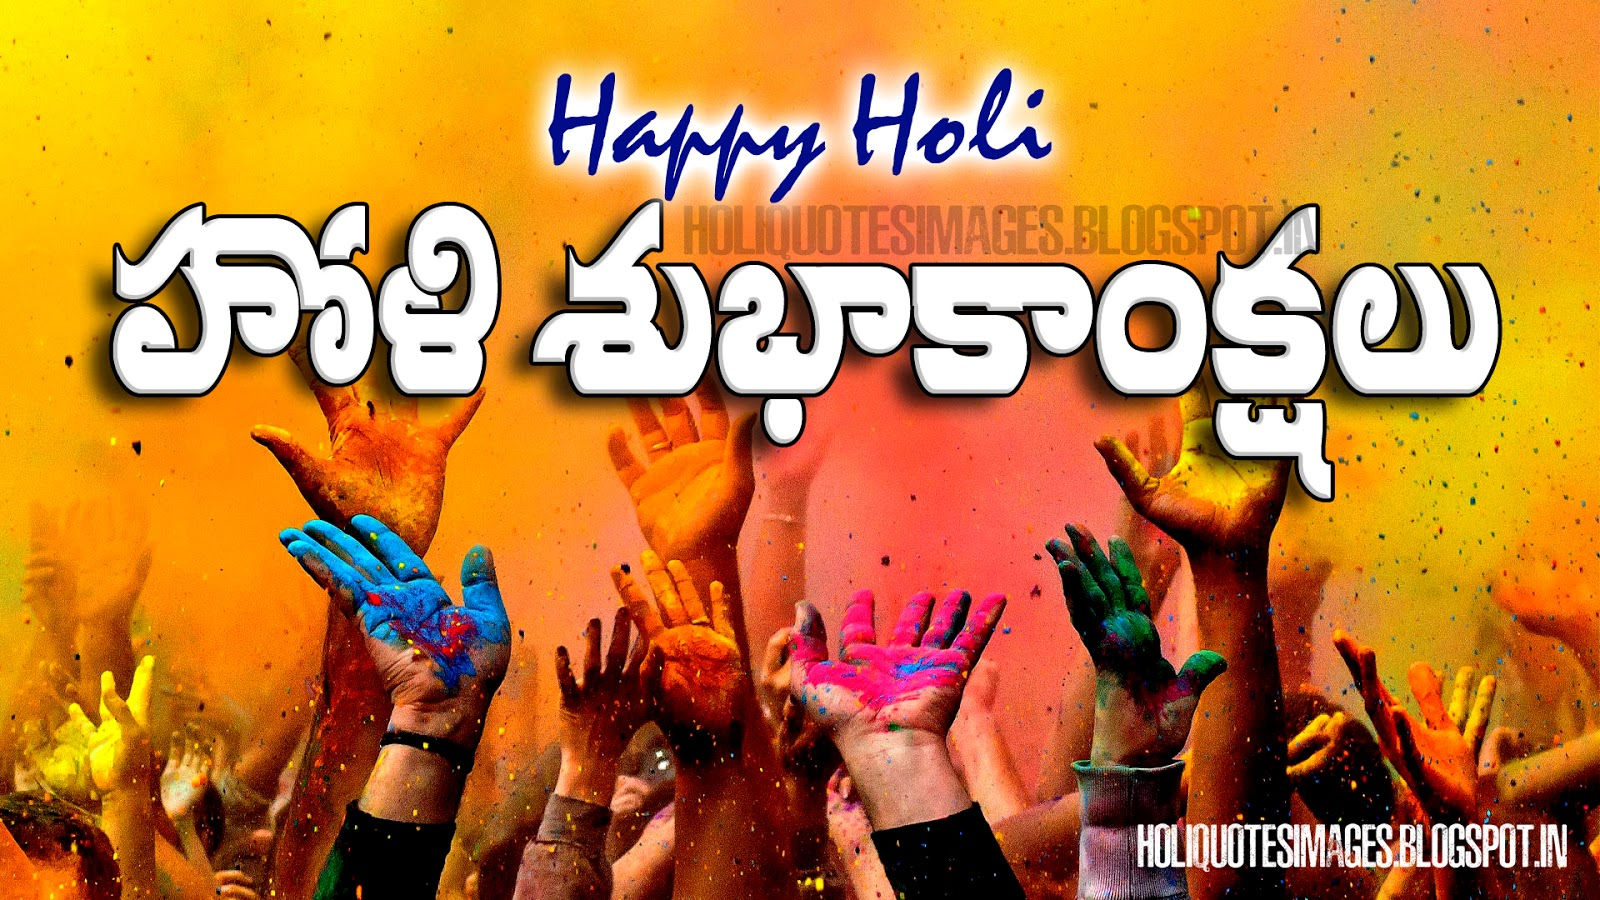 Best holi messages in telugu language telugu holi sms new telugu best telugu holi greetings wishes quotes wallpapers m4hsunfo